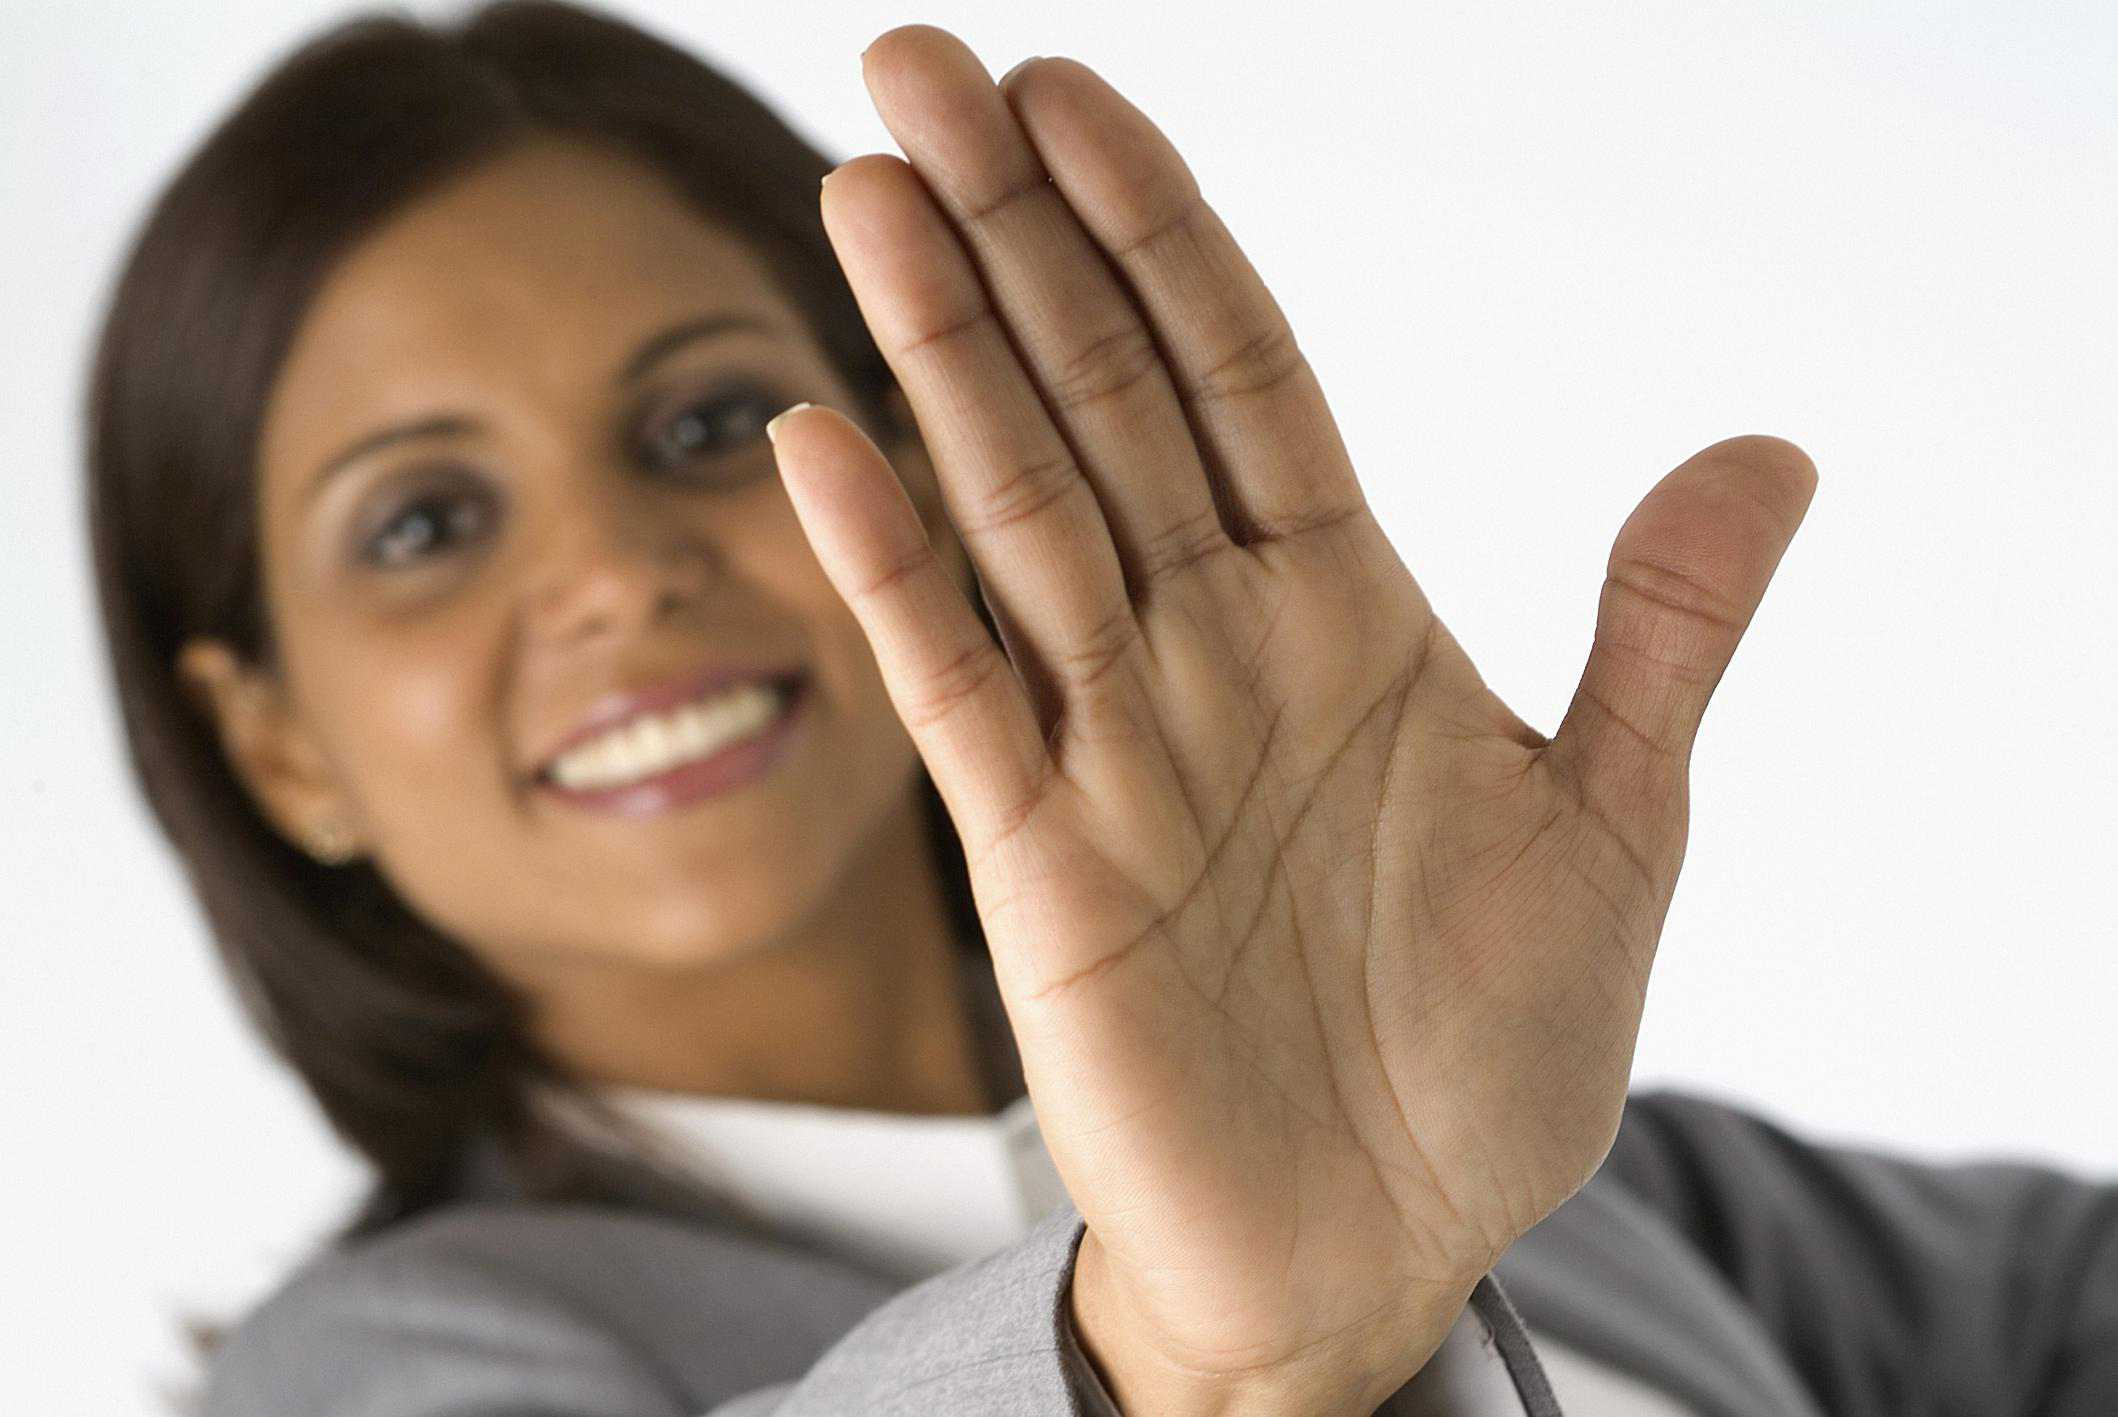 woman saying no with hand